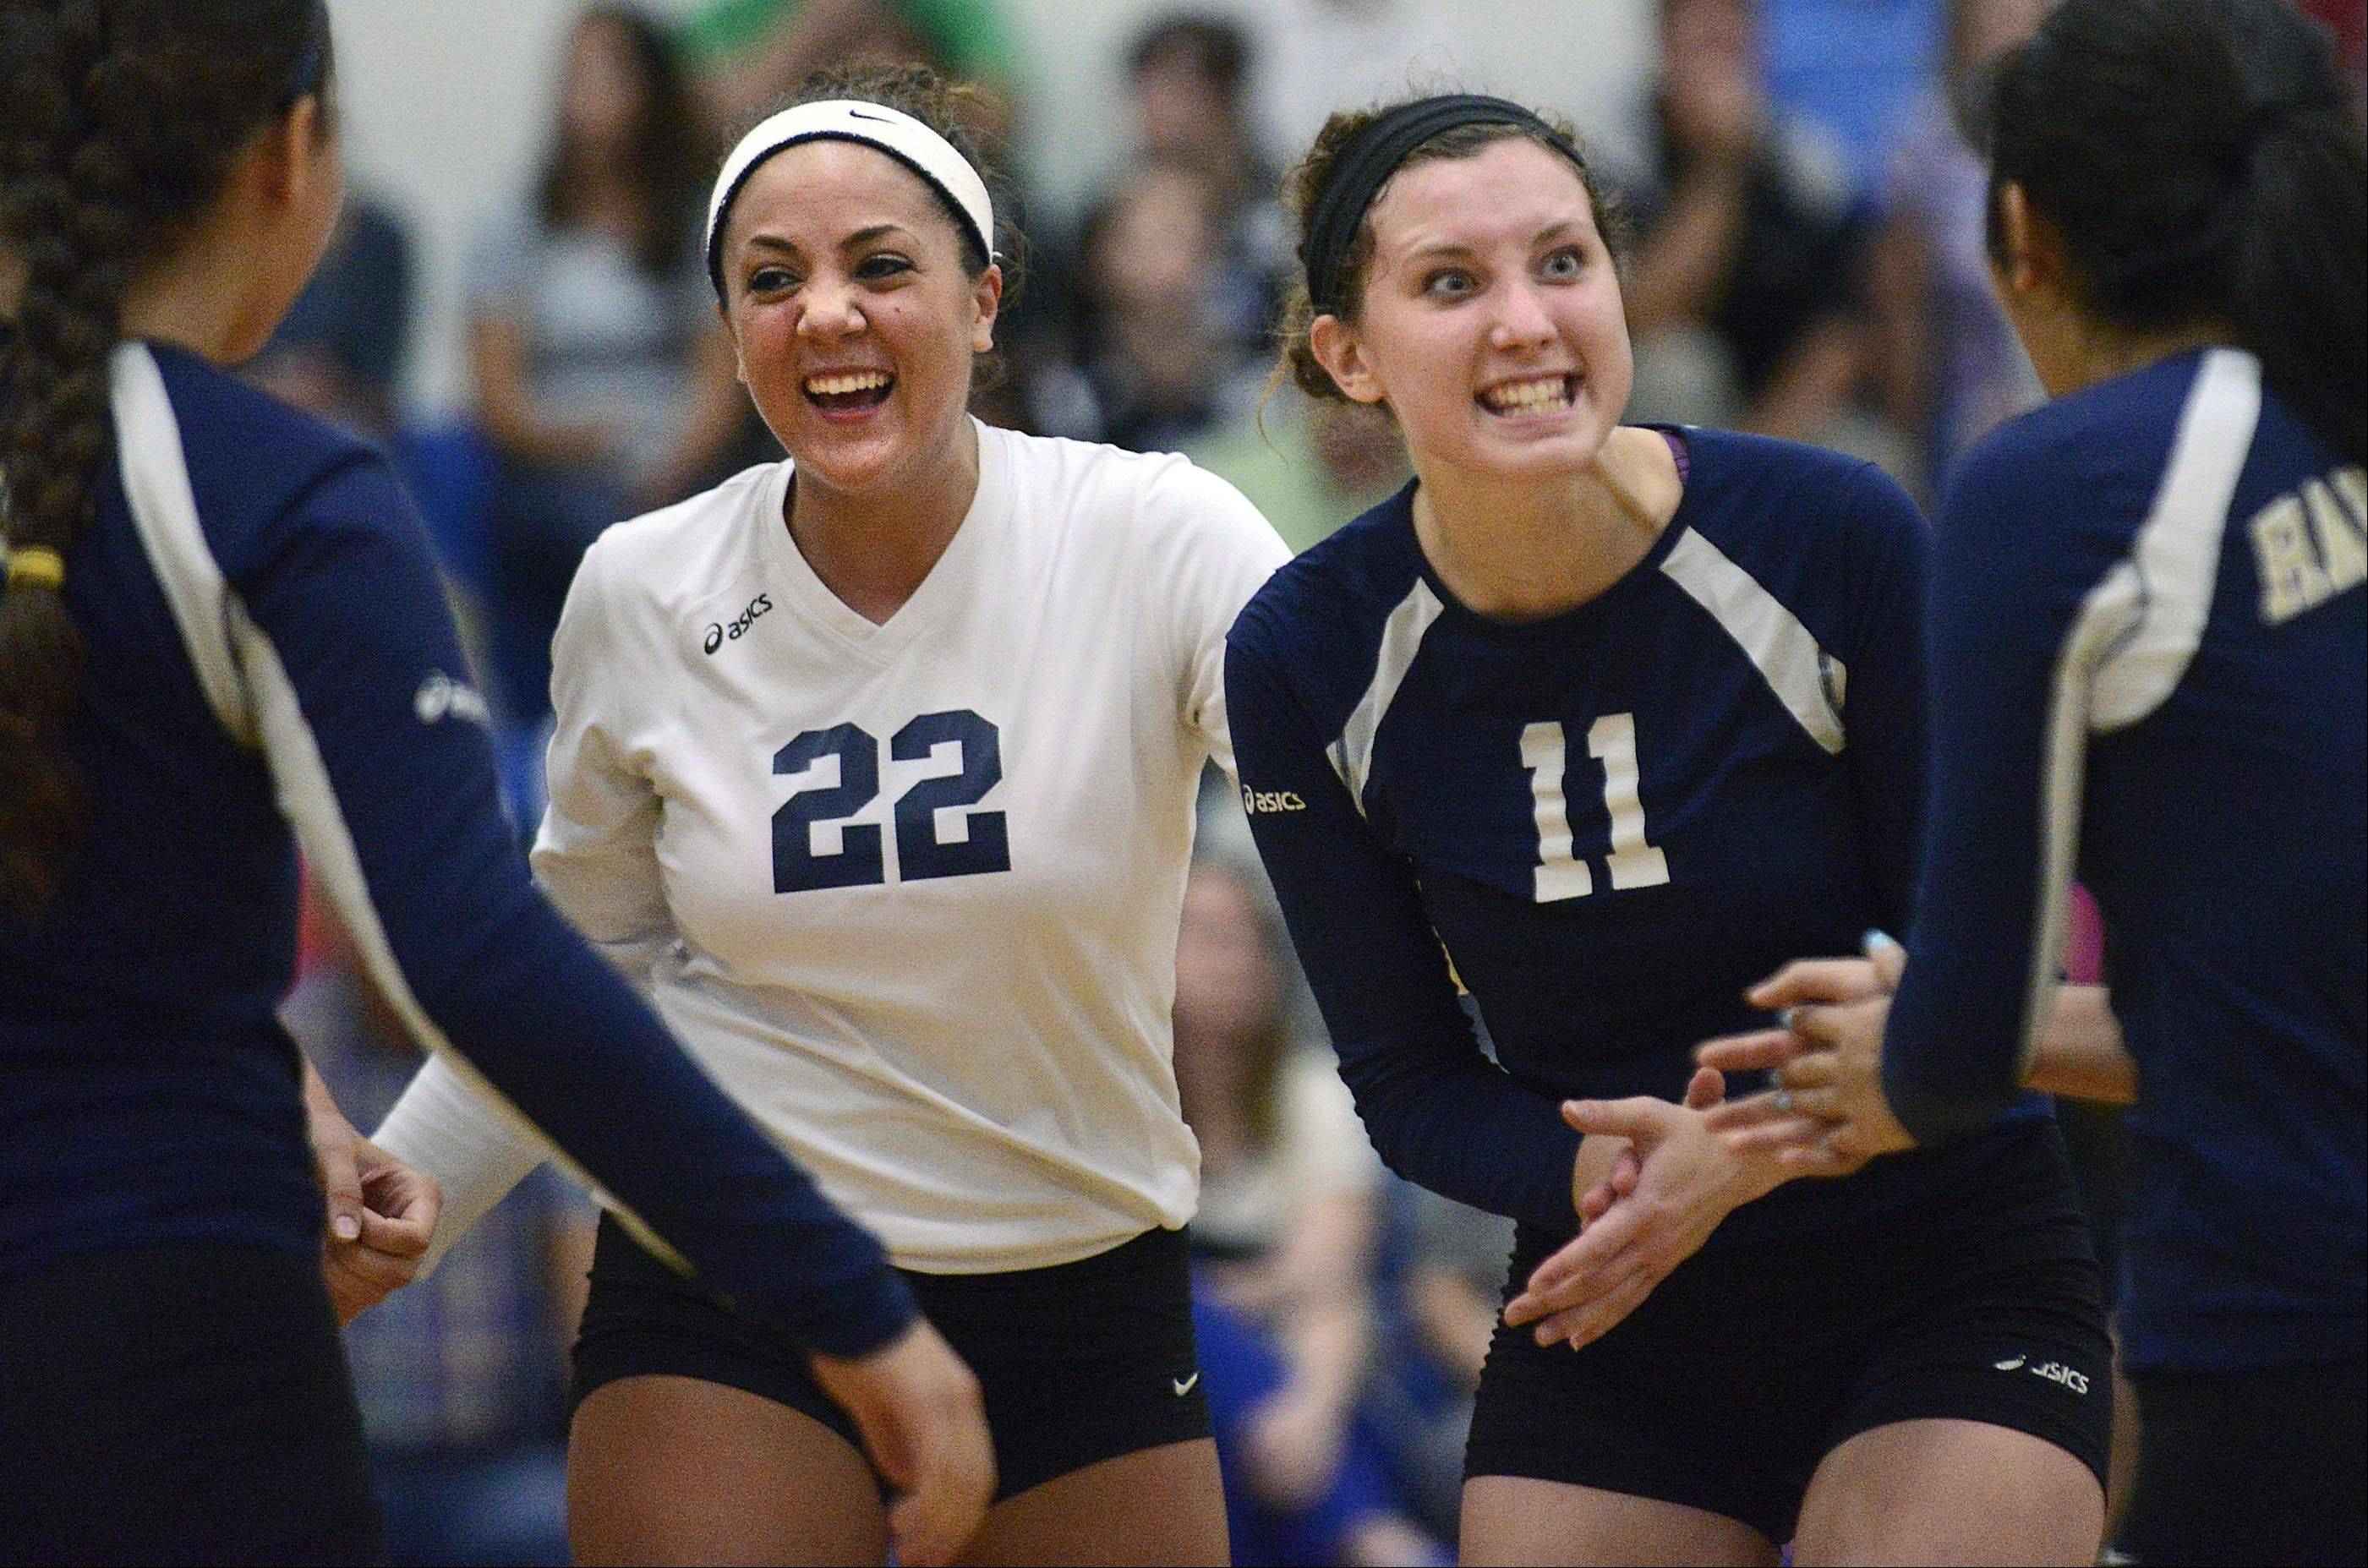 Harvest Christian's Shayna Manusos and Chloe Corbett, right, celebrate a late point in their two game victory over Westminster Christian Thursday in Elgin.